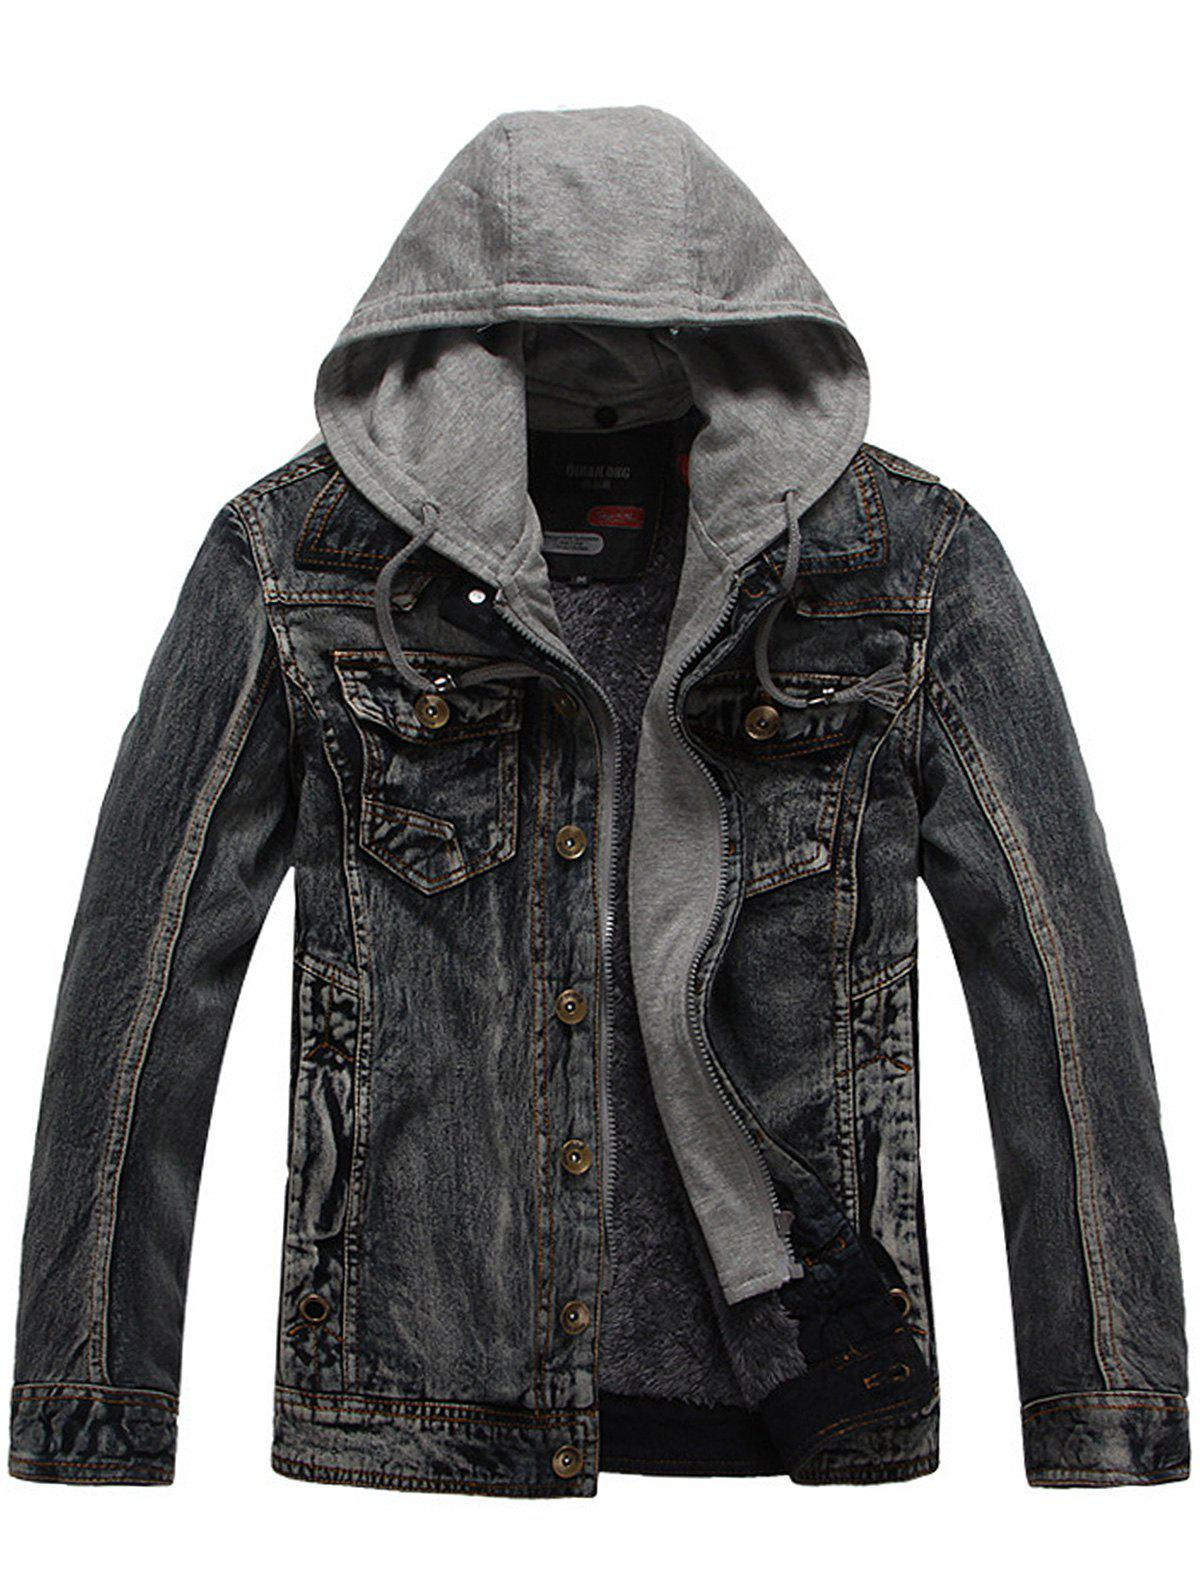 Drawstring Hooded Denim Jean Jacket - GRAY 2XL